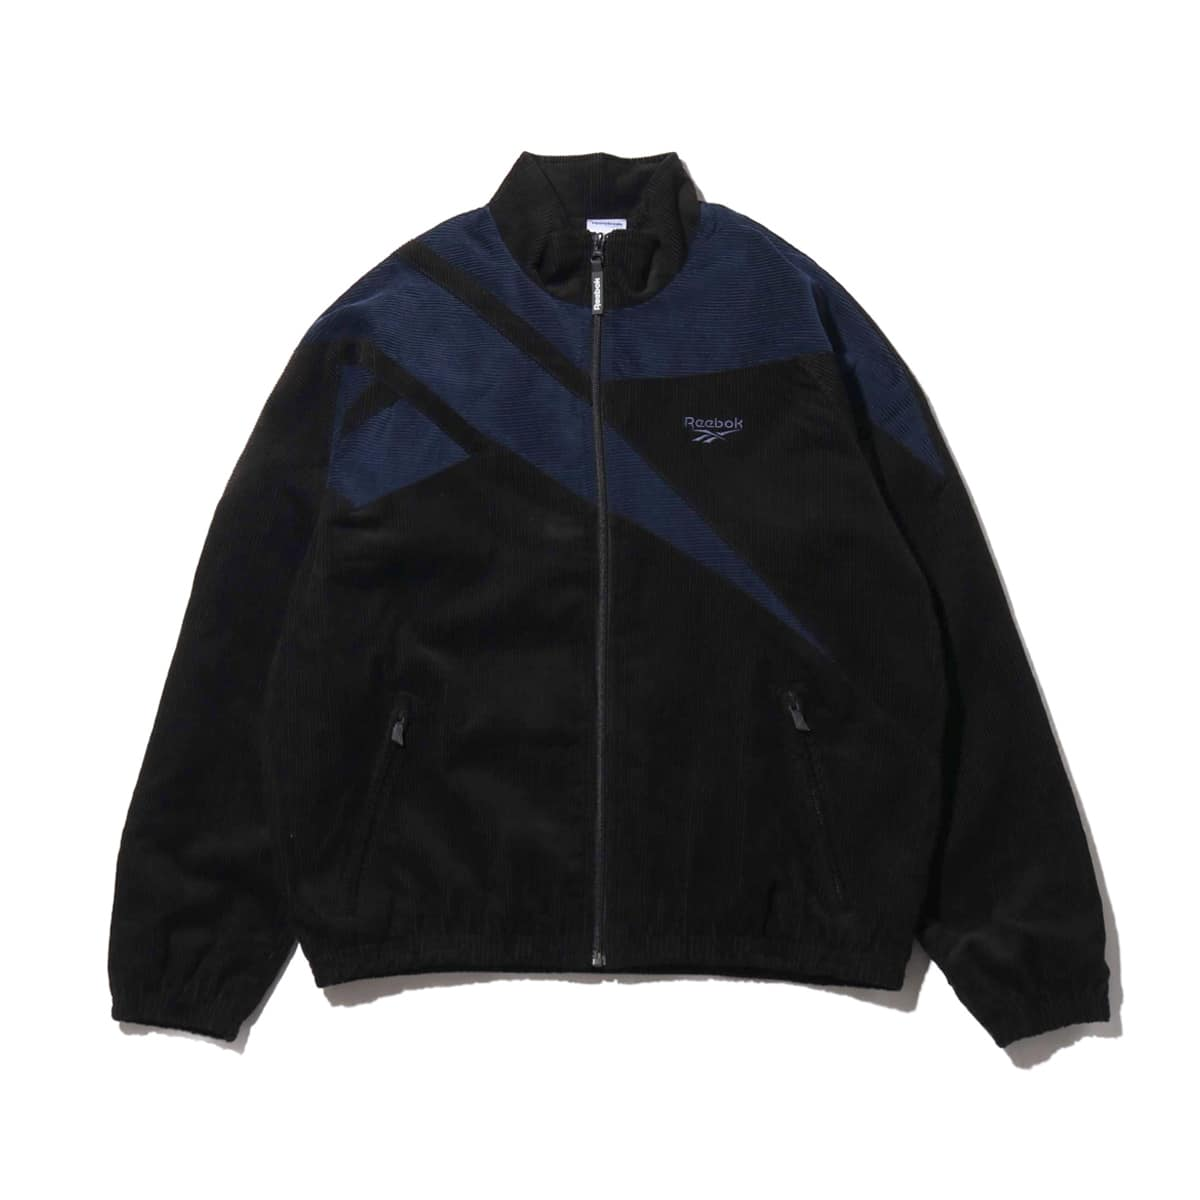 Reebok NANAMICA VECTOR TRACKTOP BLACK 19FW-S_photo_large